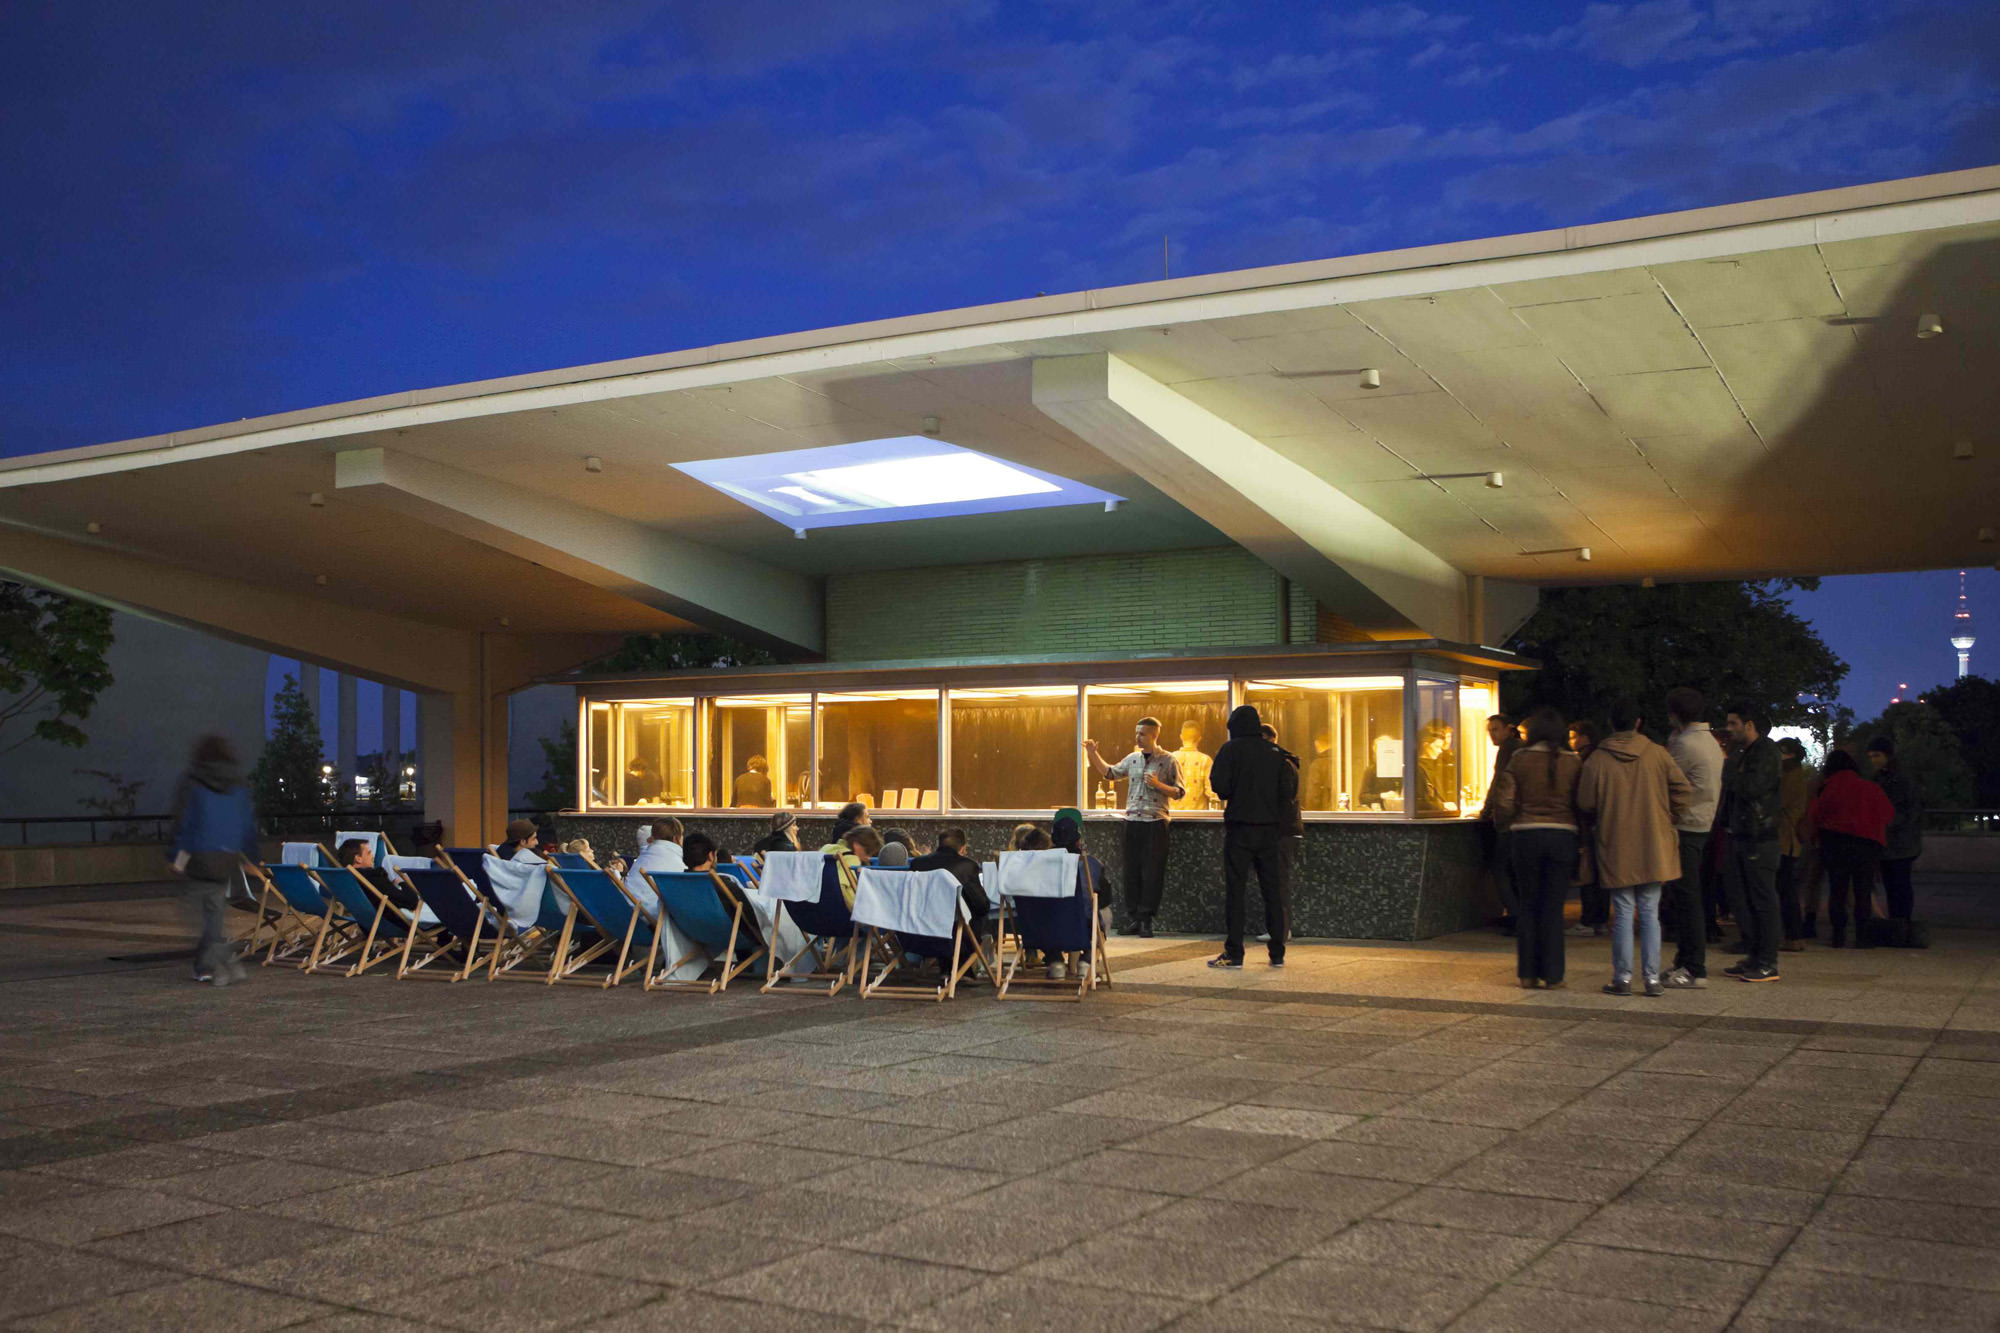 """19 Hours at the Kiosk, a project by Studio Miessen as part of the exhibition """"Between Walls and Windows:Architecture and Ideology"""", commissioned and produced by Haus der Kulturen der Welt, Berlin, 2012;weekly evening program including discussions, presentations, performances, reading groups, barbecues and drinks. Photography by Judith Affolter and Thomas Eugster."""